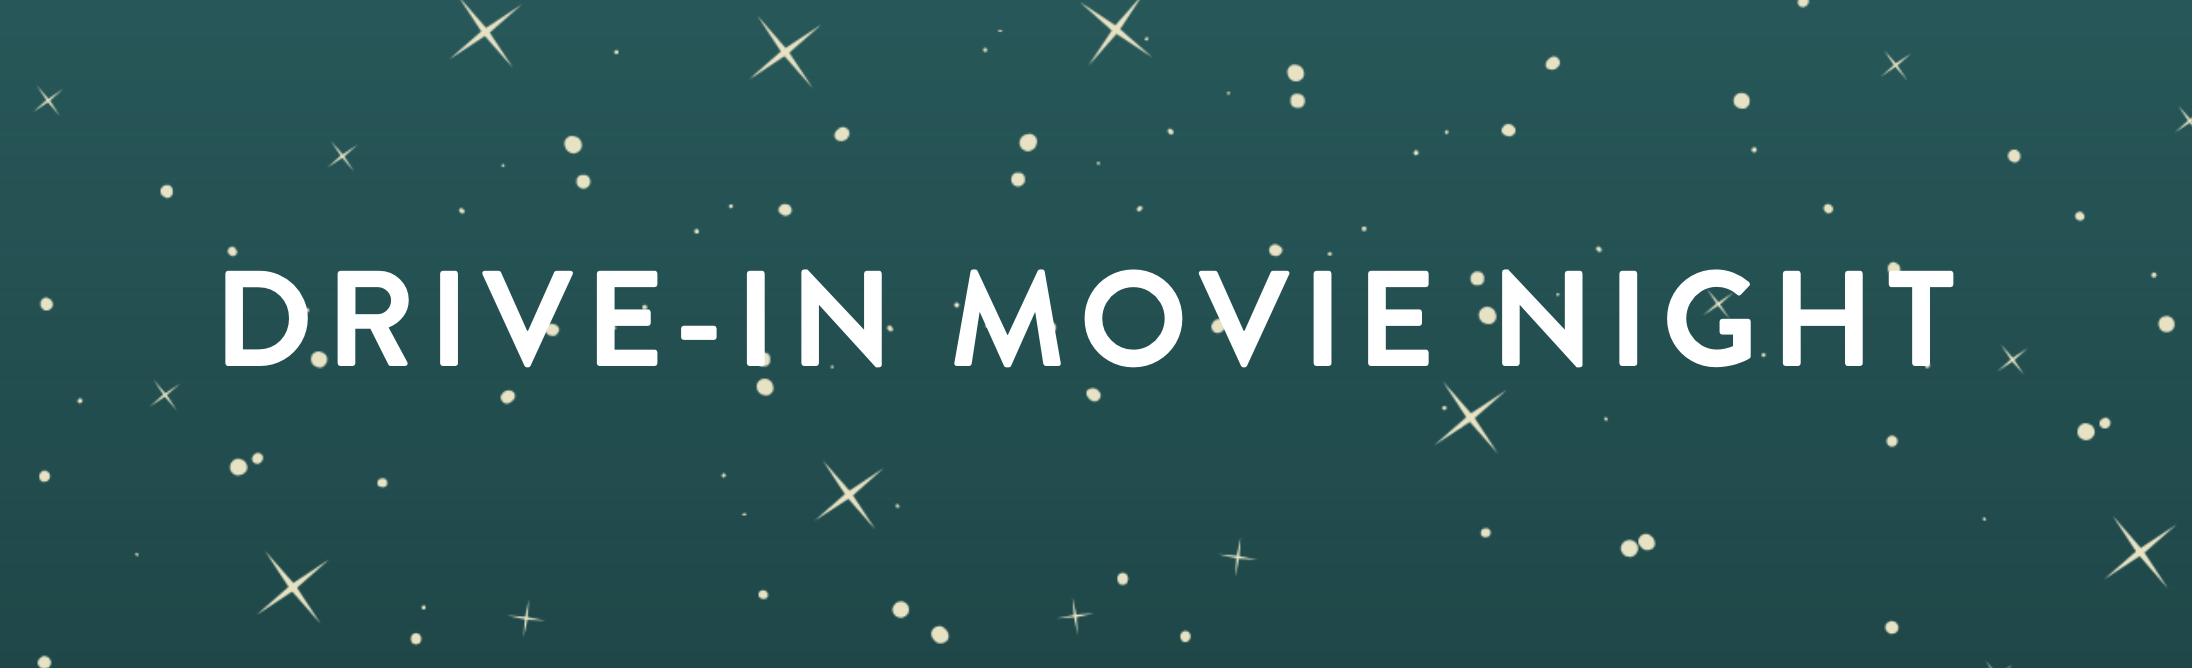 New Life Drive in Movies